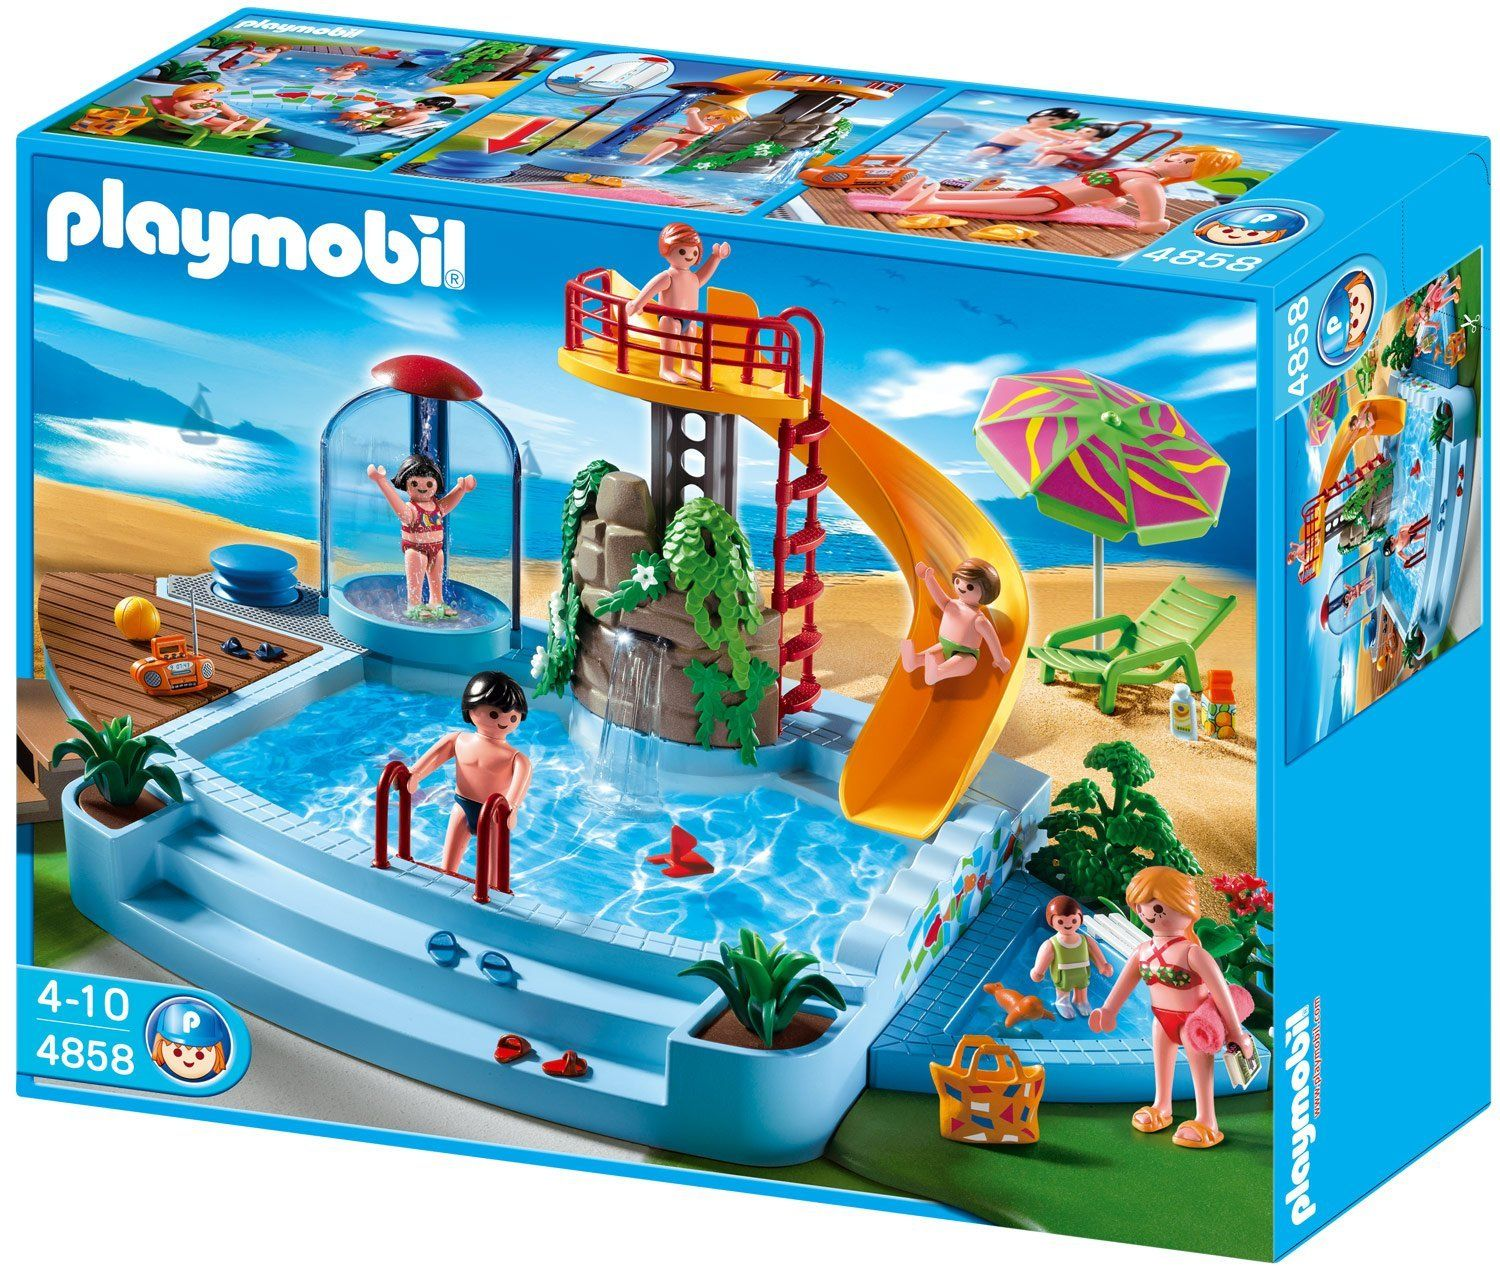 attrayant Playmobil - 4858 - Jeu de construction - Piscine avec toboggan: Amazon.fr: